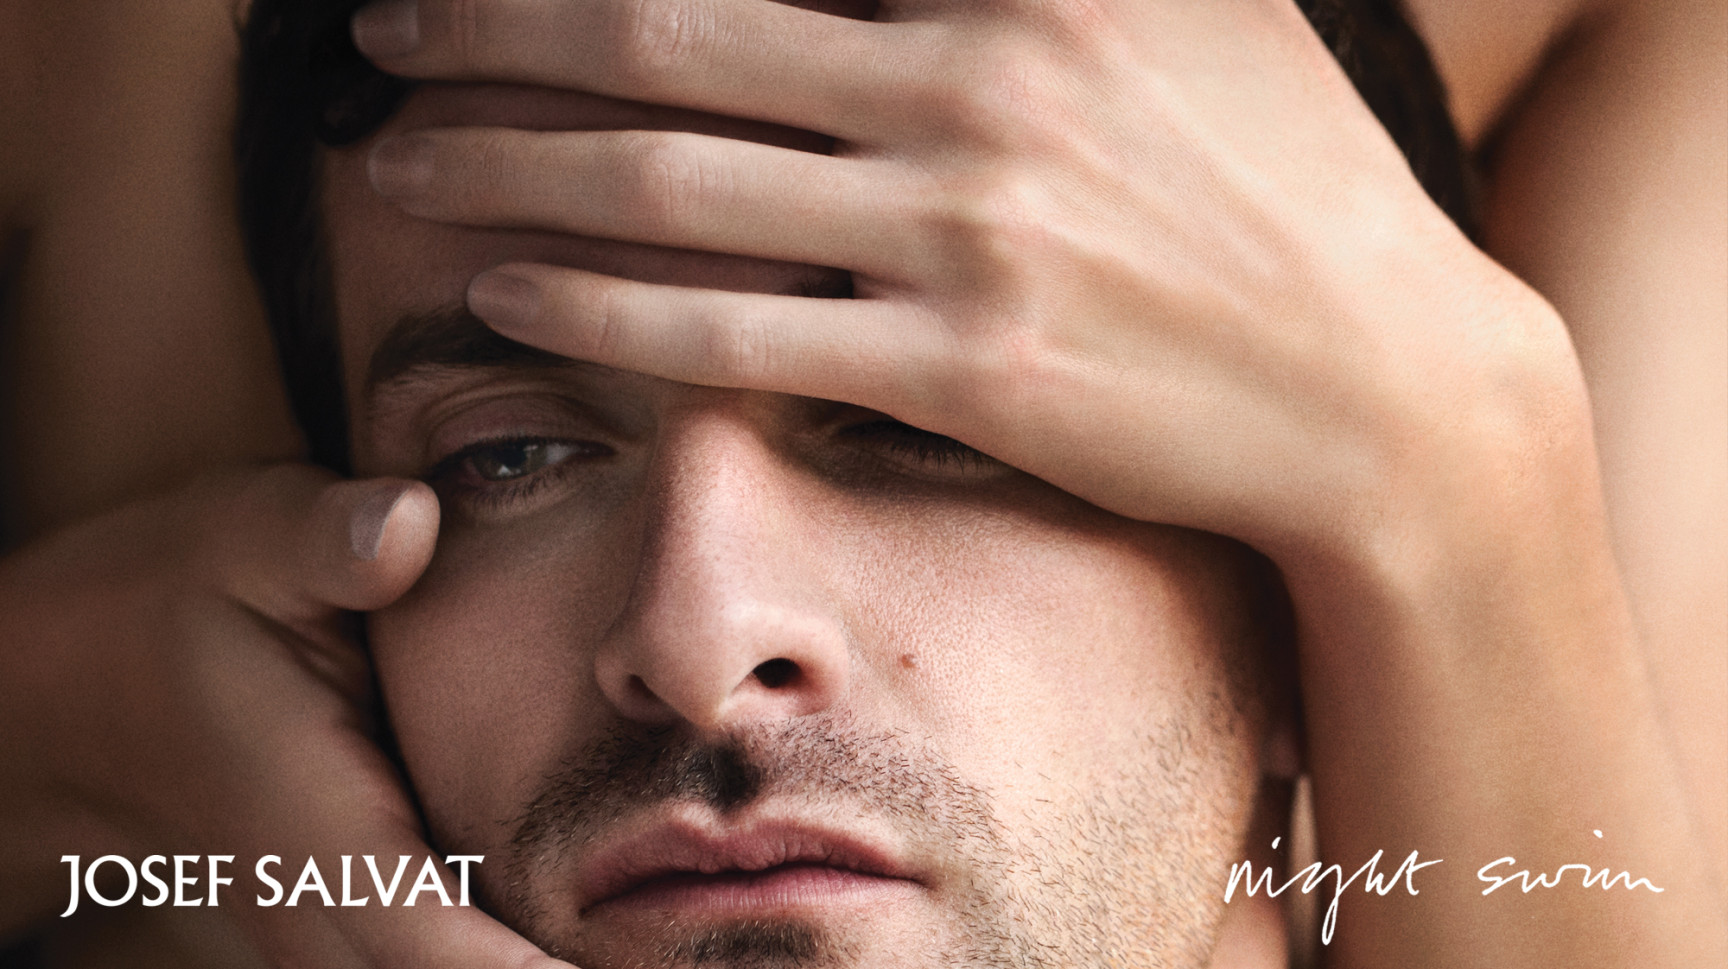 Music<br /><strong>Josef Salvat - Night Swim</strong>